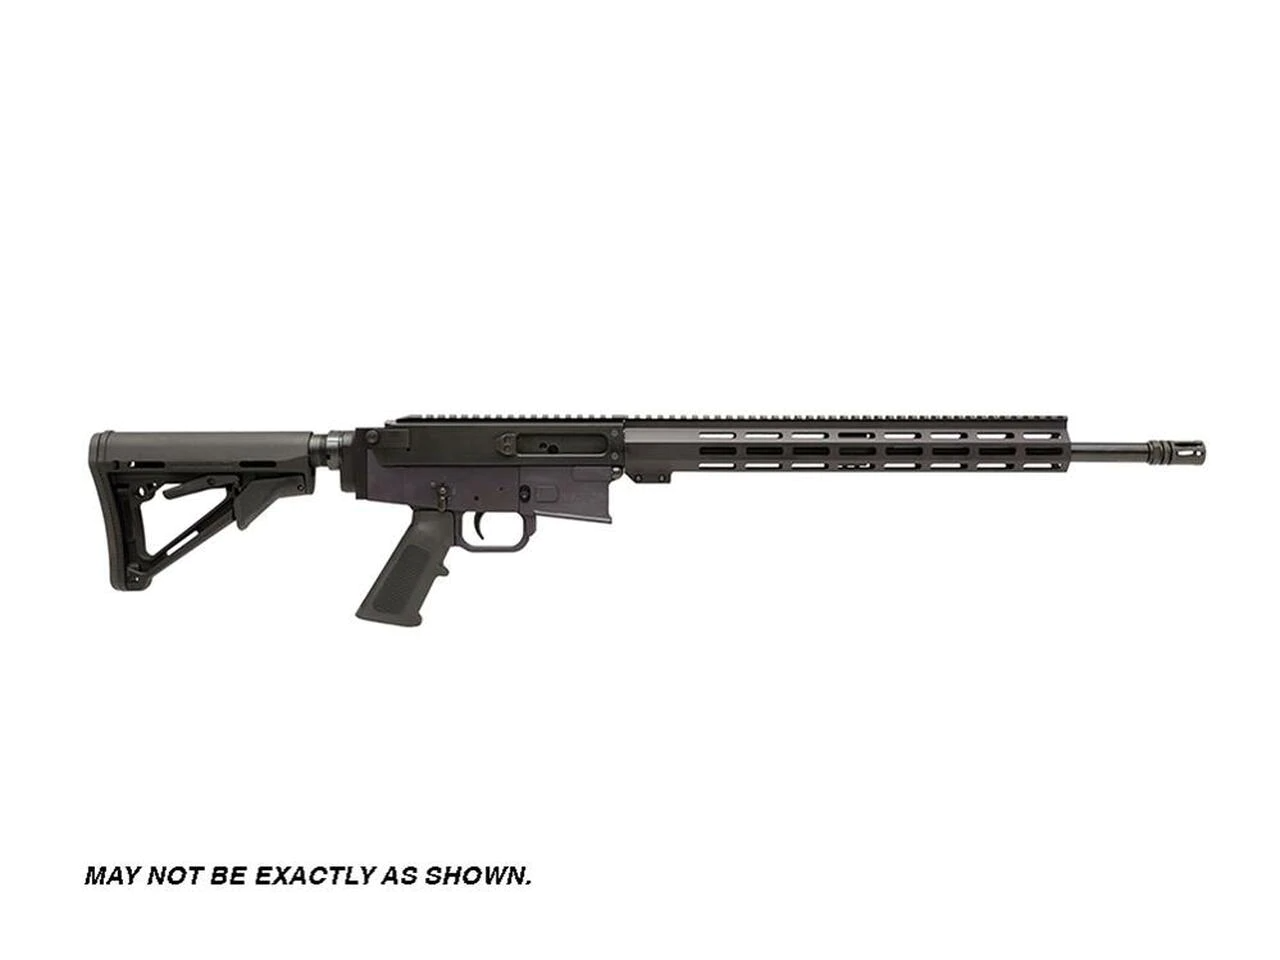 "WS-MCR Rifle 5.56 Nato 18.7"" Barrel, Non-Restricted (Factory 2nd)"